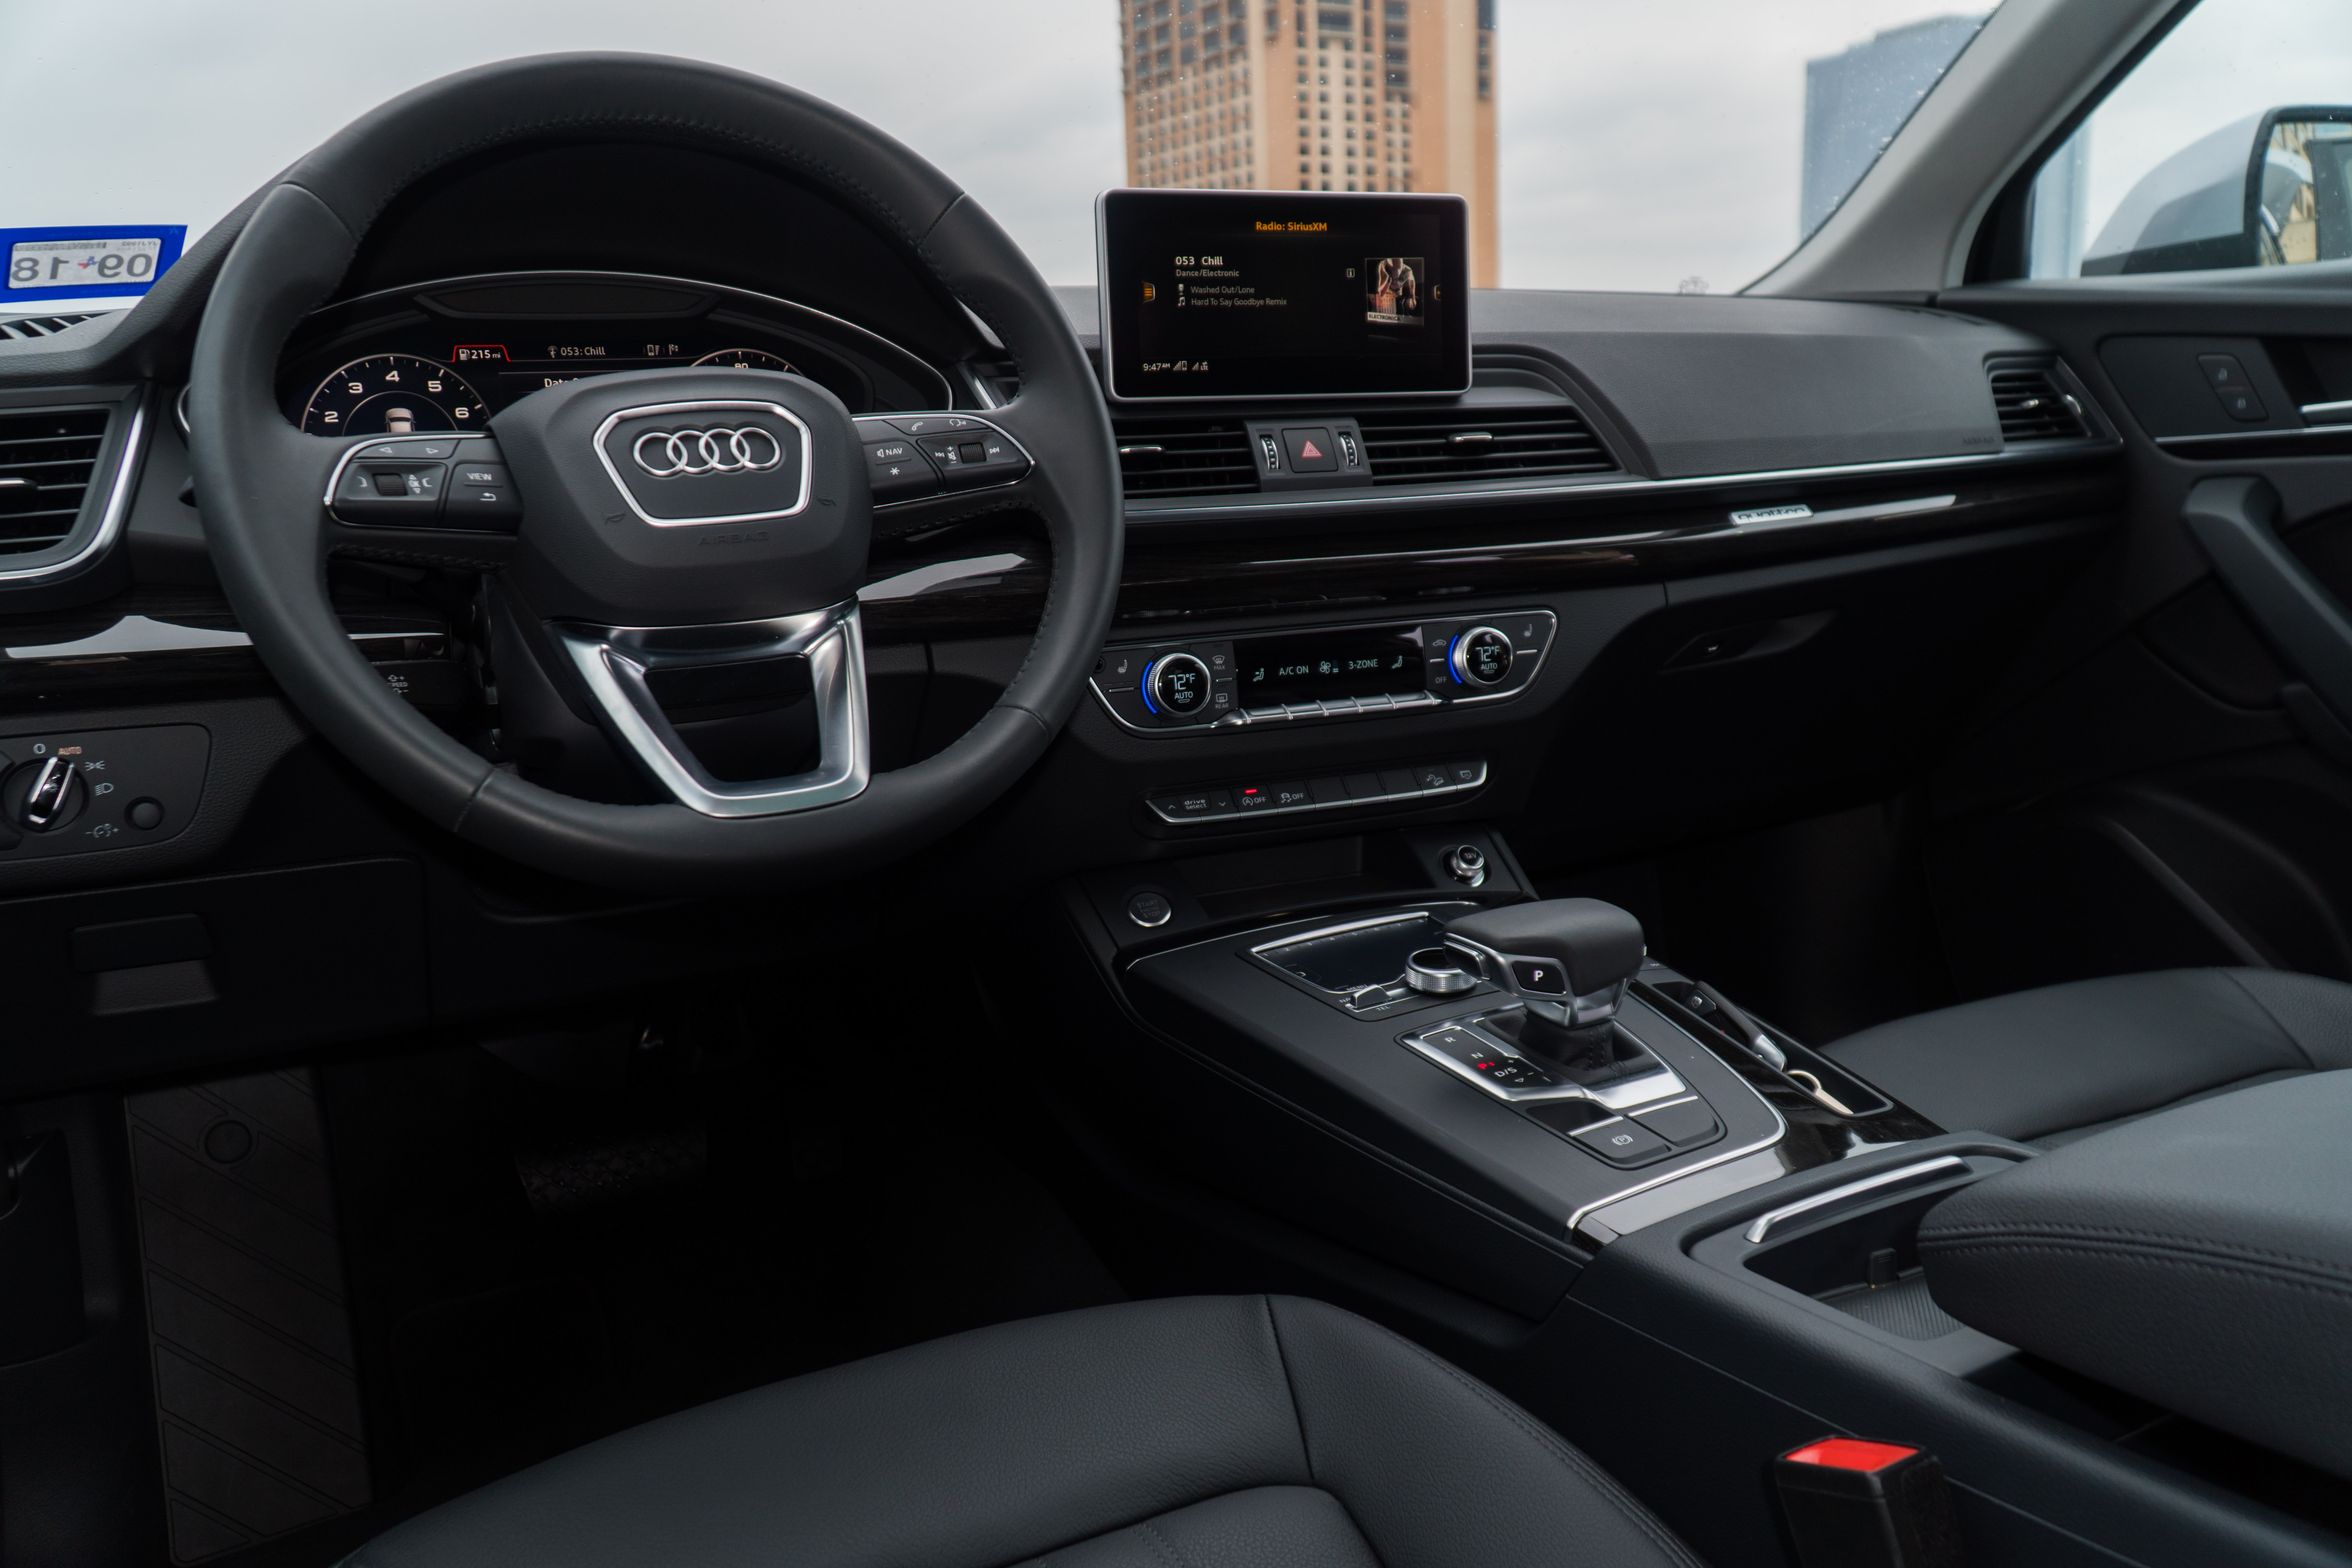 What Are The Interior Features Design Of The Audi Vehicles In The - Audi interior